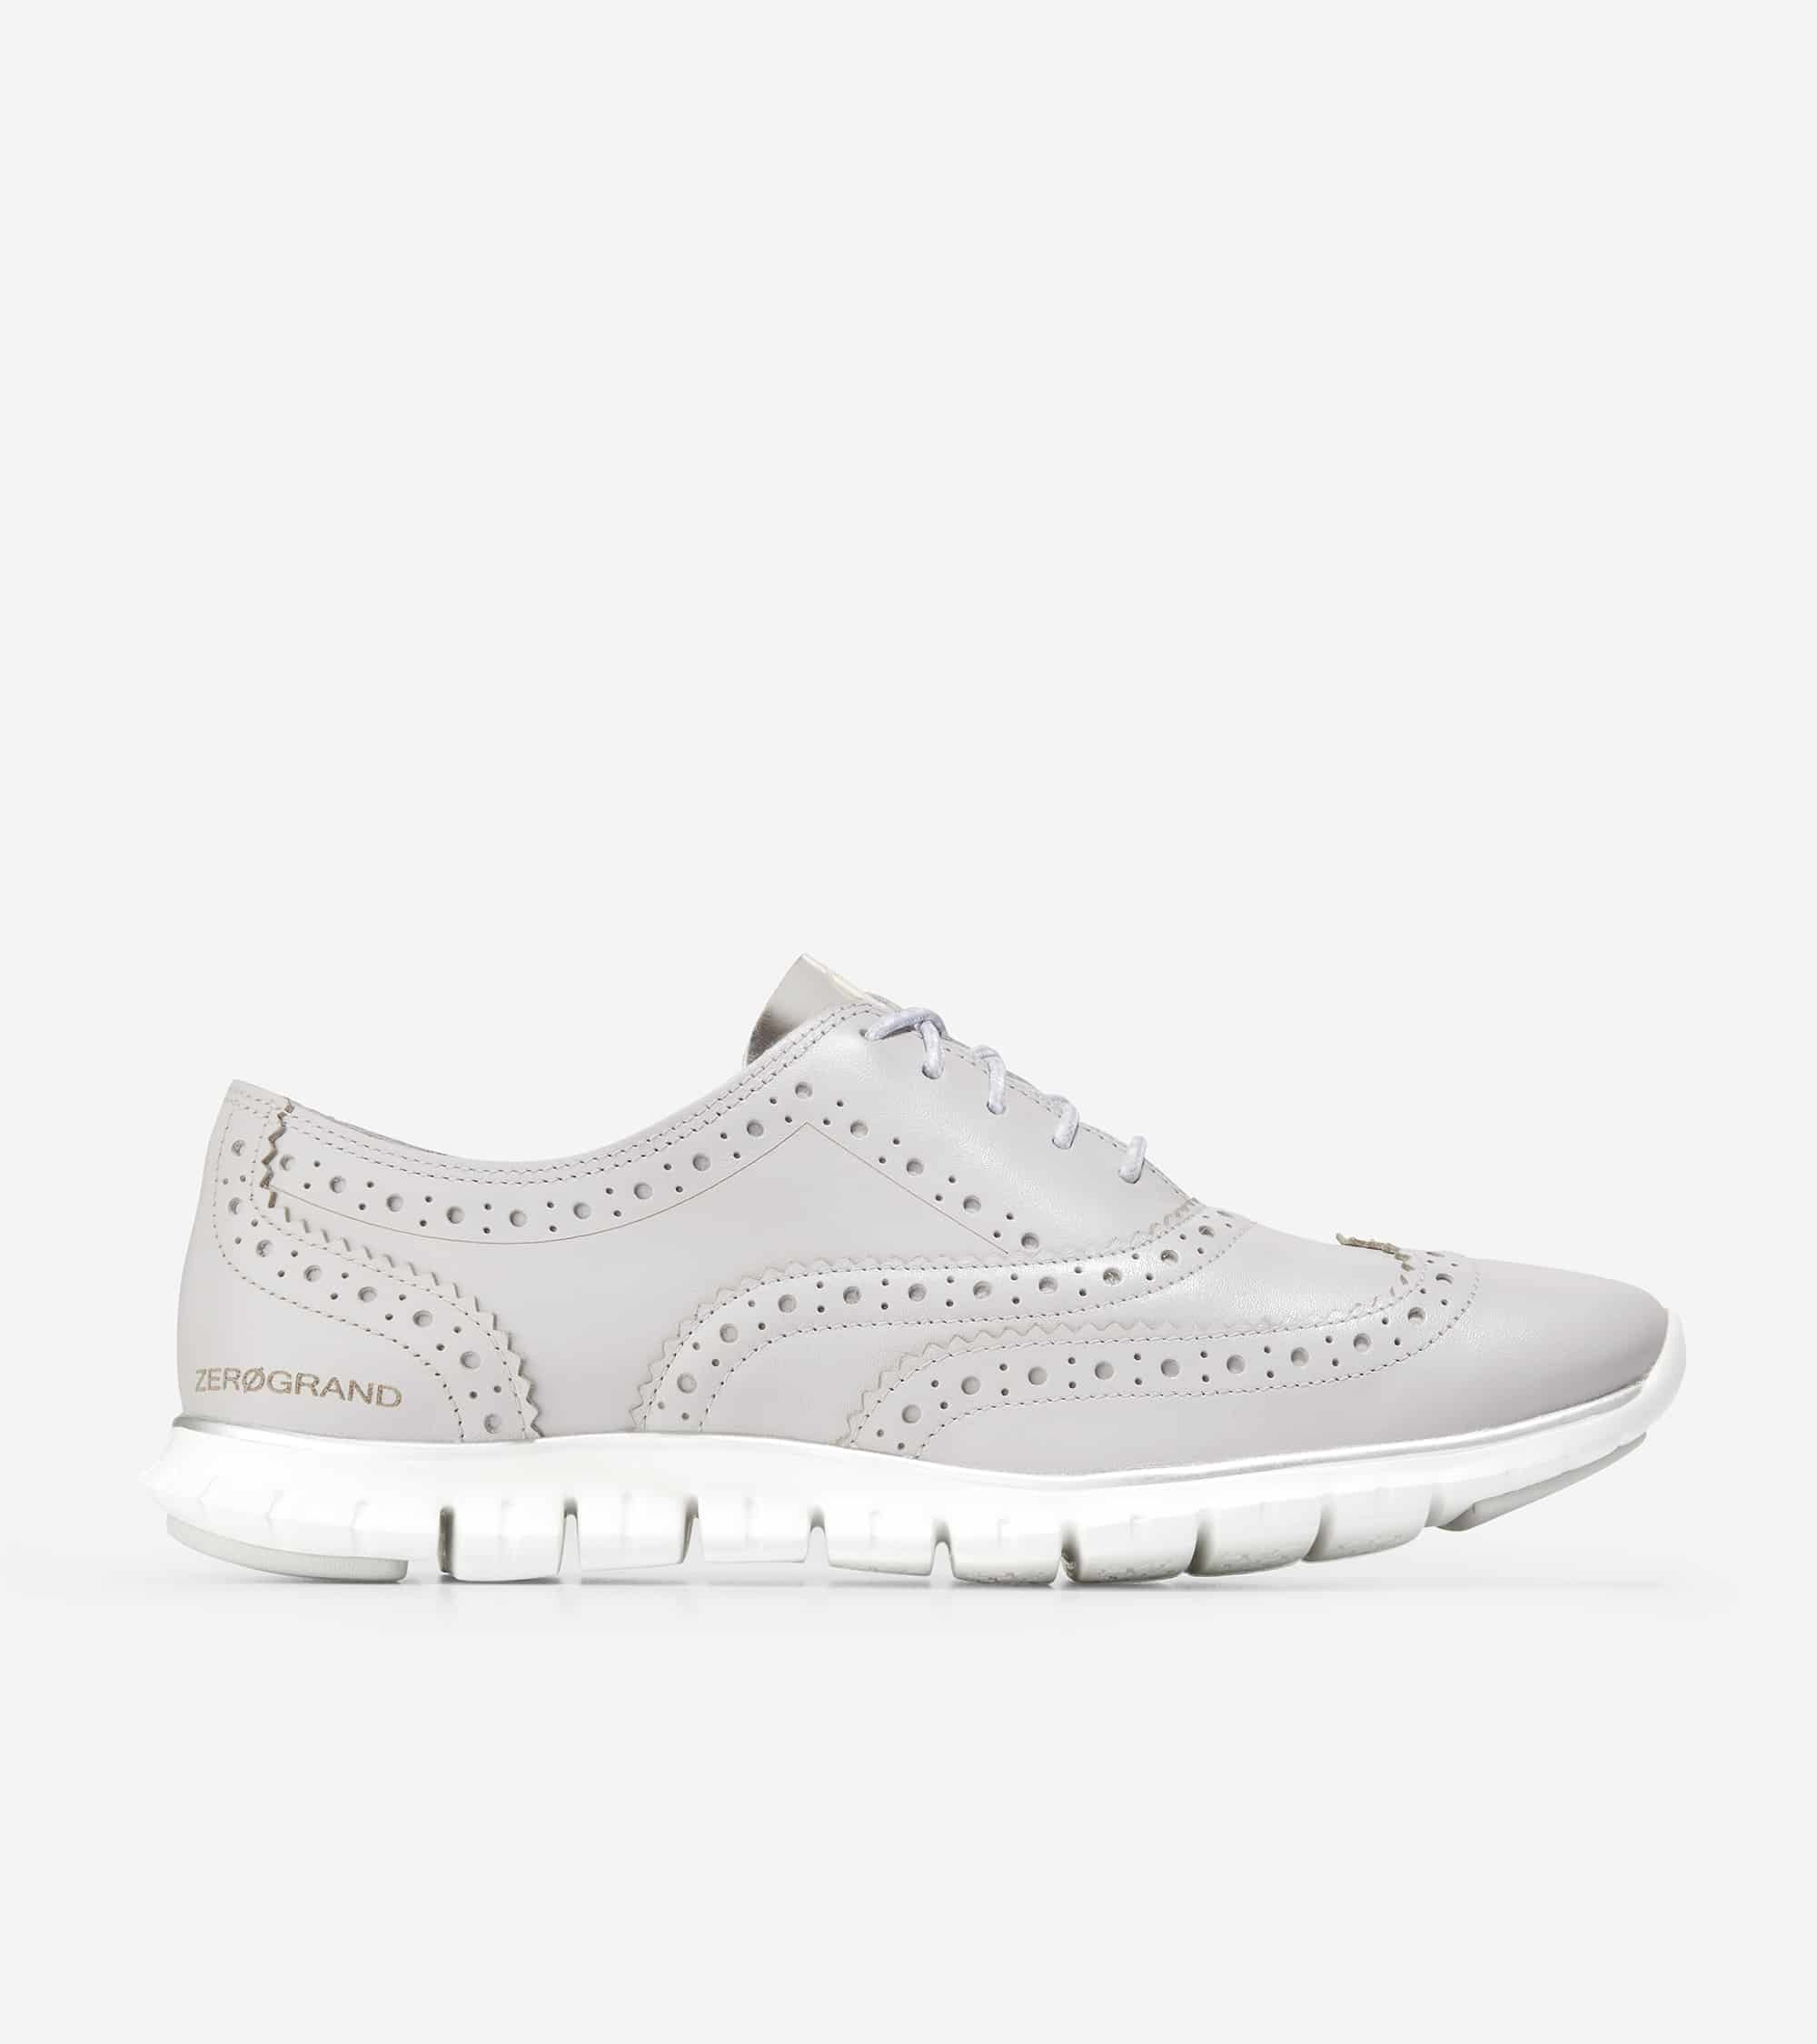 Cole Haan ZERØGRAND Wing Ox Closed Hole Ii Cool Gray Lthr / Ch Argento / Optic White Midsole / Cool Gray Rubber Pods